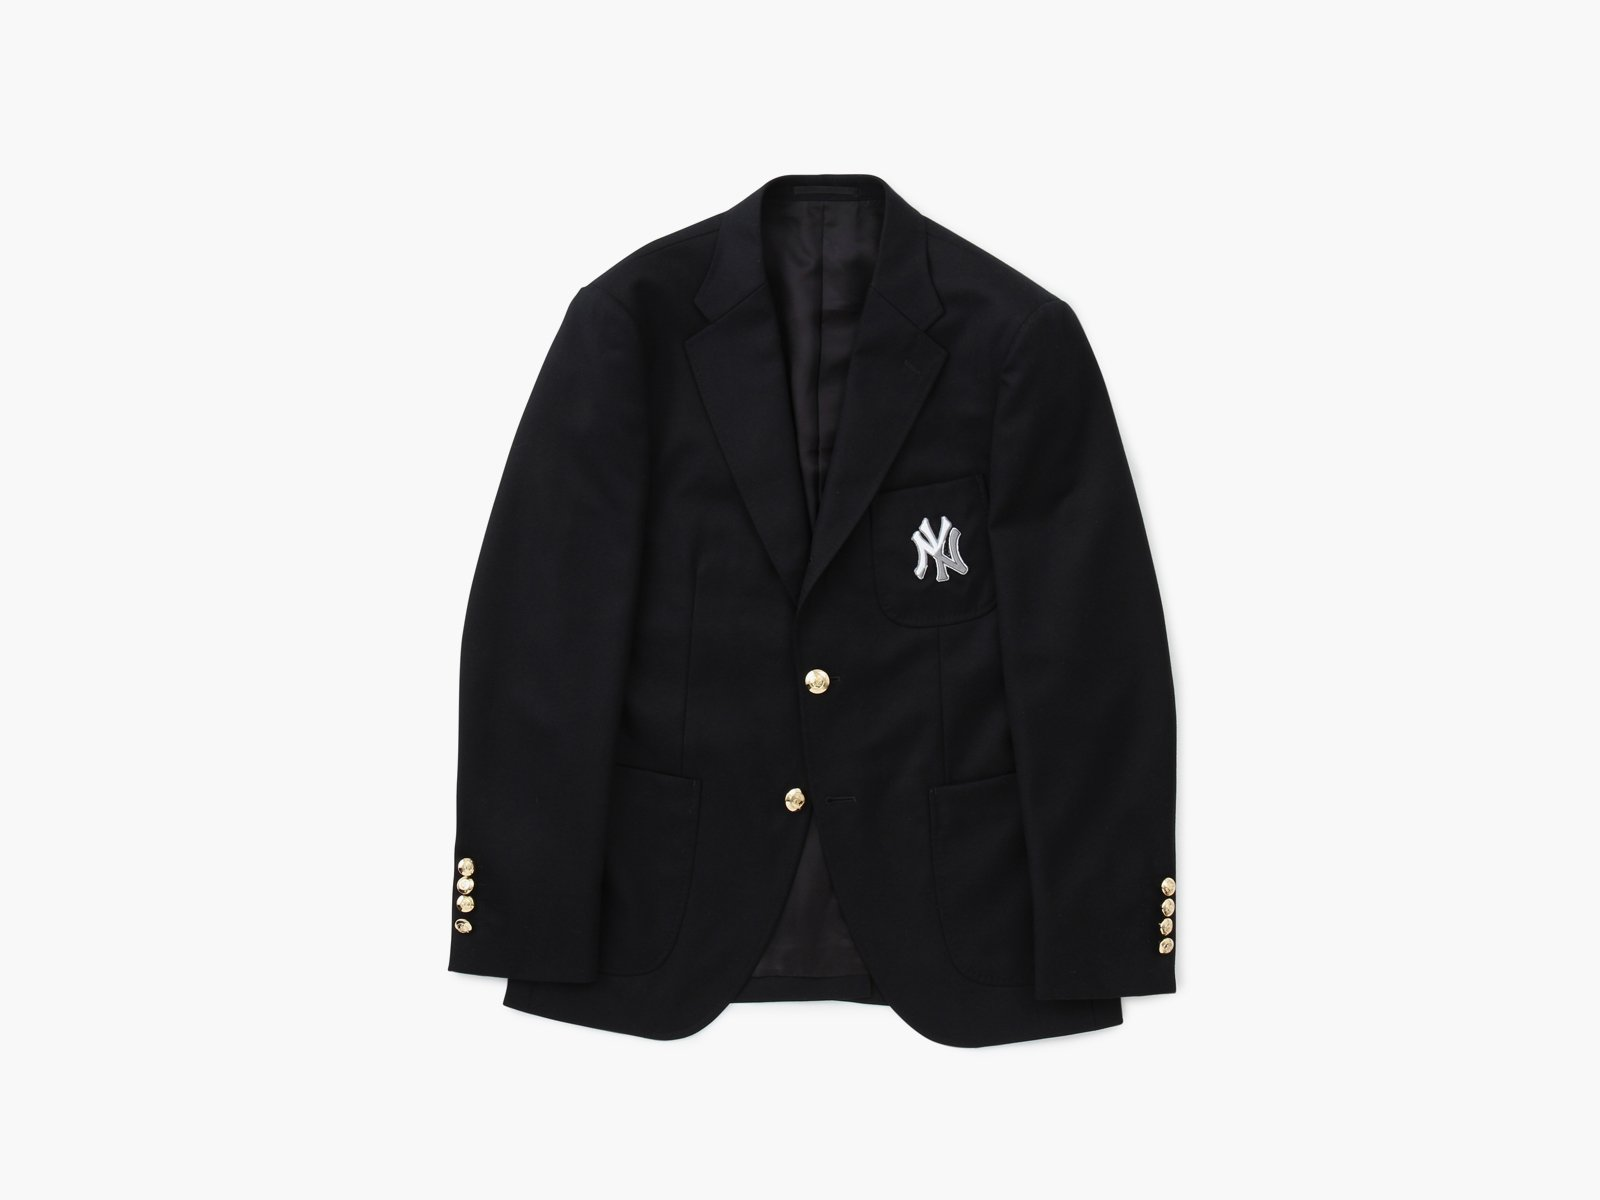 united-arrows-sons-hombre-nino-47-collaboration-items